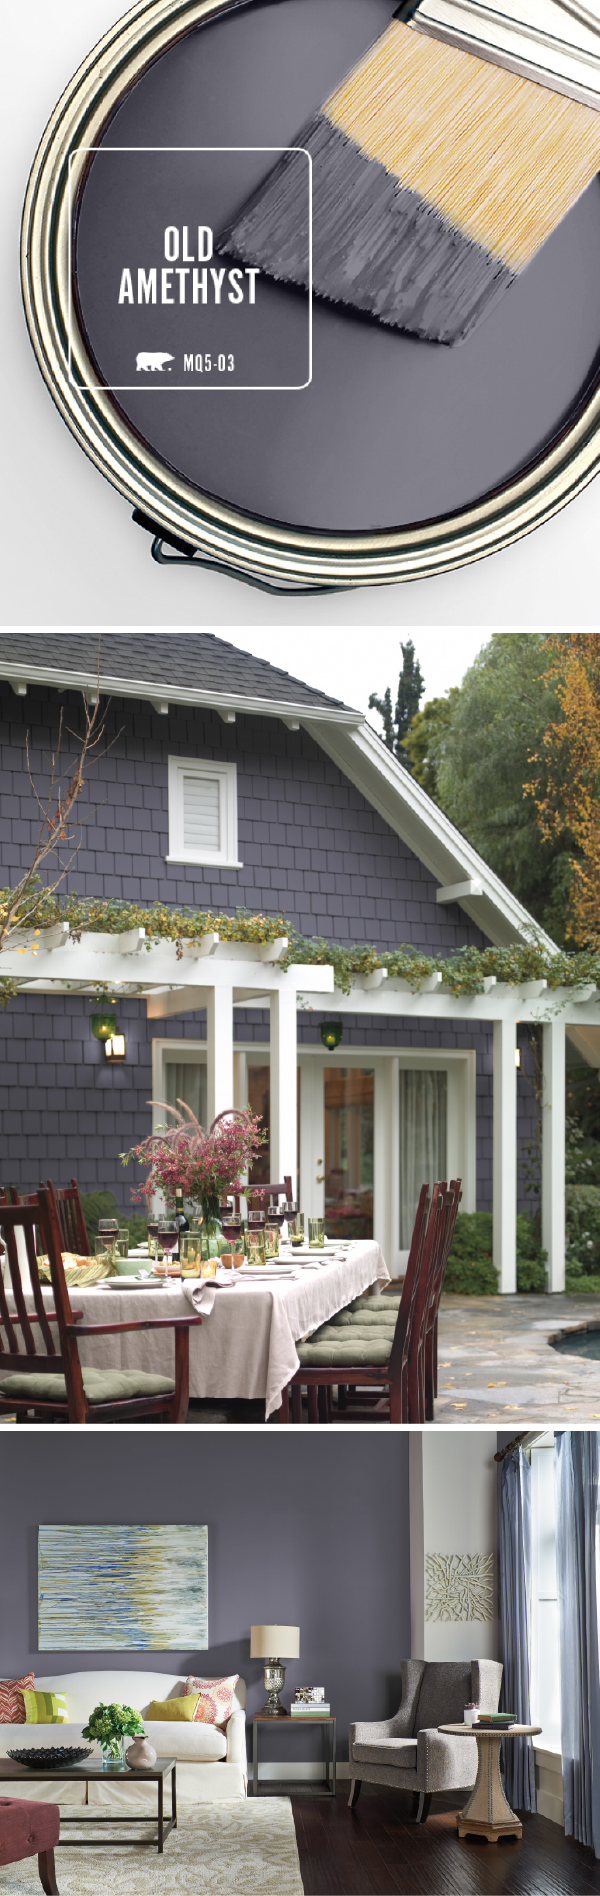 Bring the exterior of your home into the 21st century with BEHR's Color of the Month: Old Amethyst. This modern paint color shines when paired with bright white trim and a natural stone pathway. Use the deep blue and purple undertones in this dark gray hue to enhance the view of your outdoor landscaping.